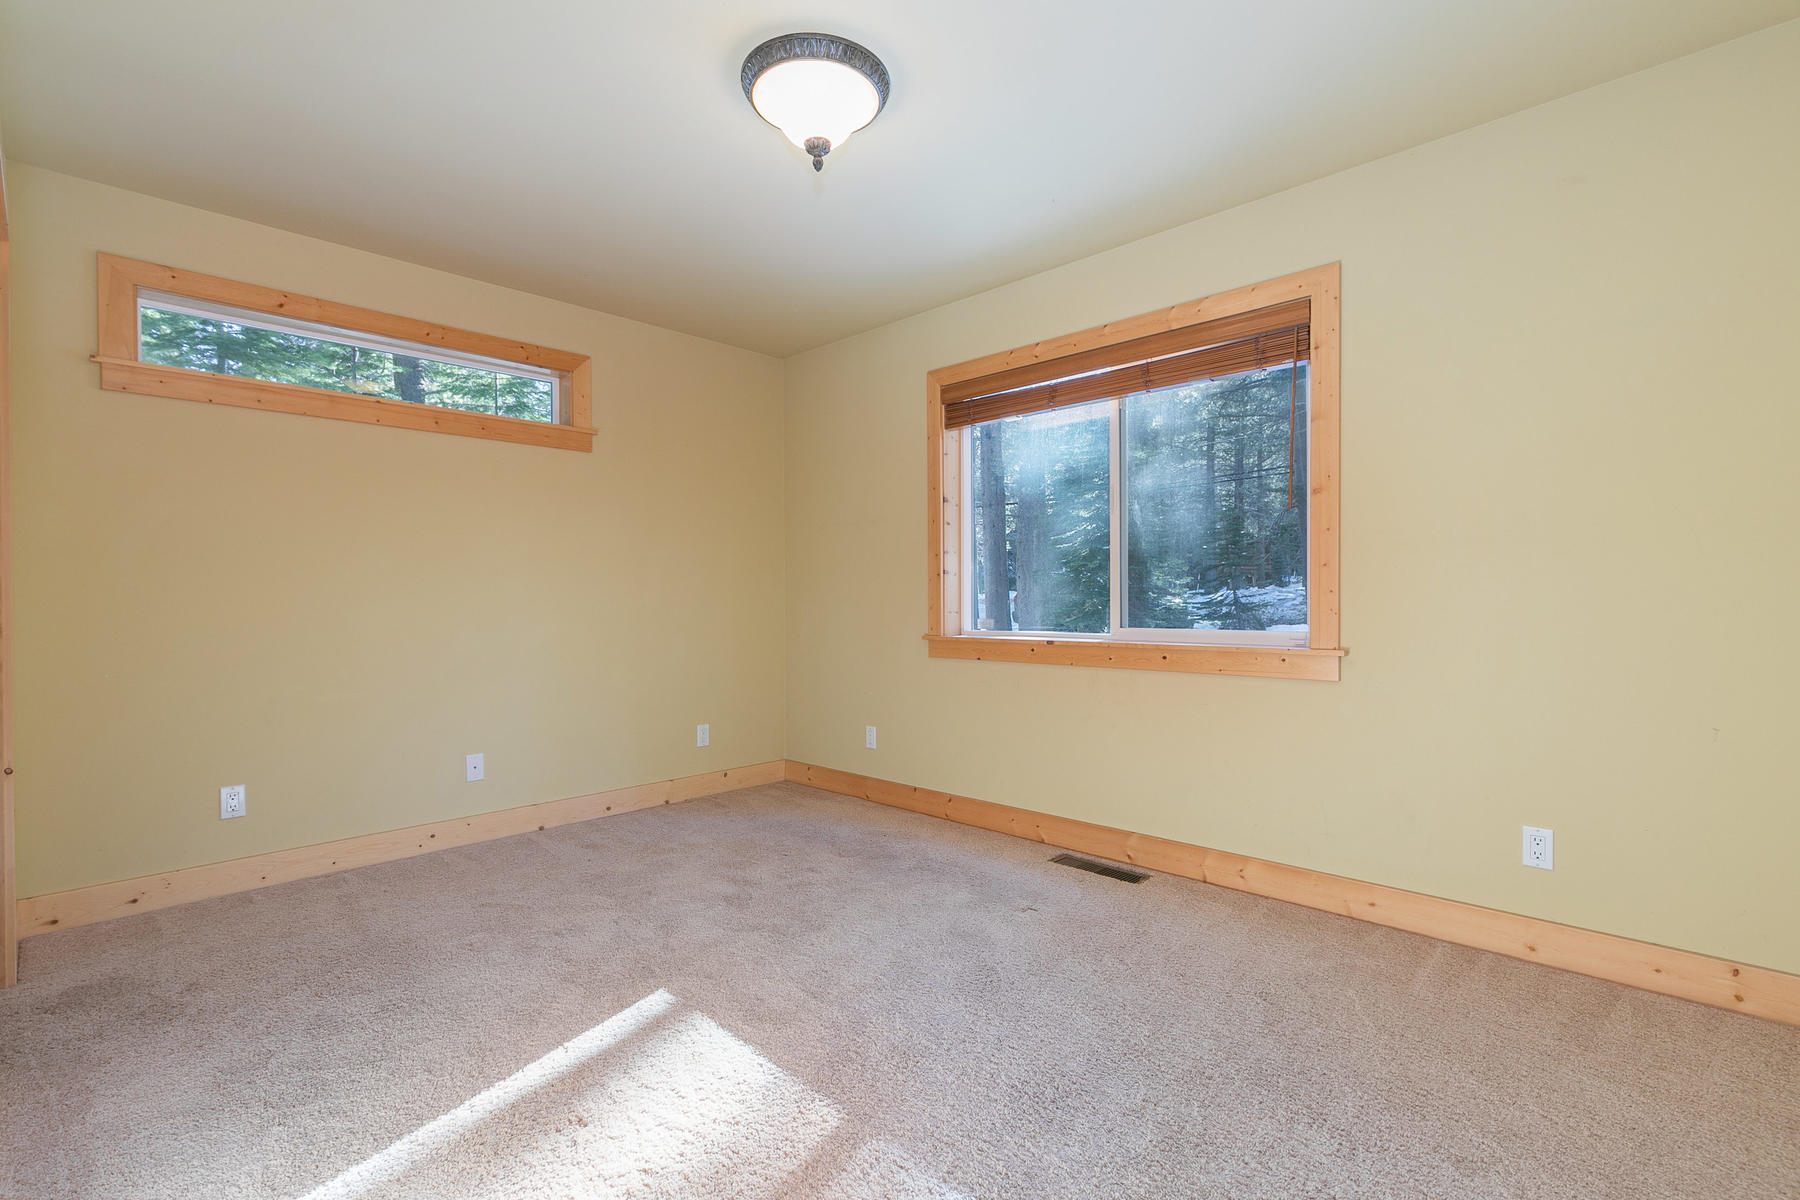 Additional photo for property listing at 11895 Zermatt Drive Truckee California 96161 11895 Zermatt Drive 特拉基, 加利福尼亚州 96161 美国